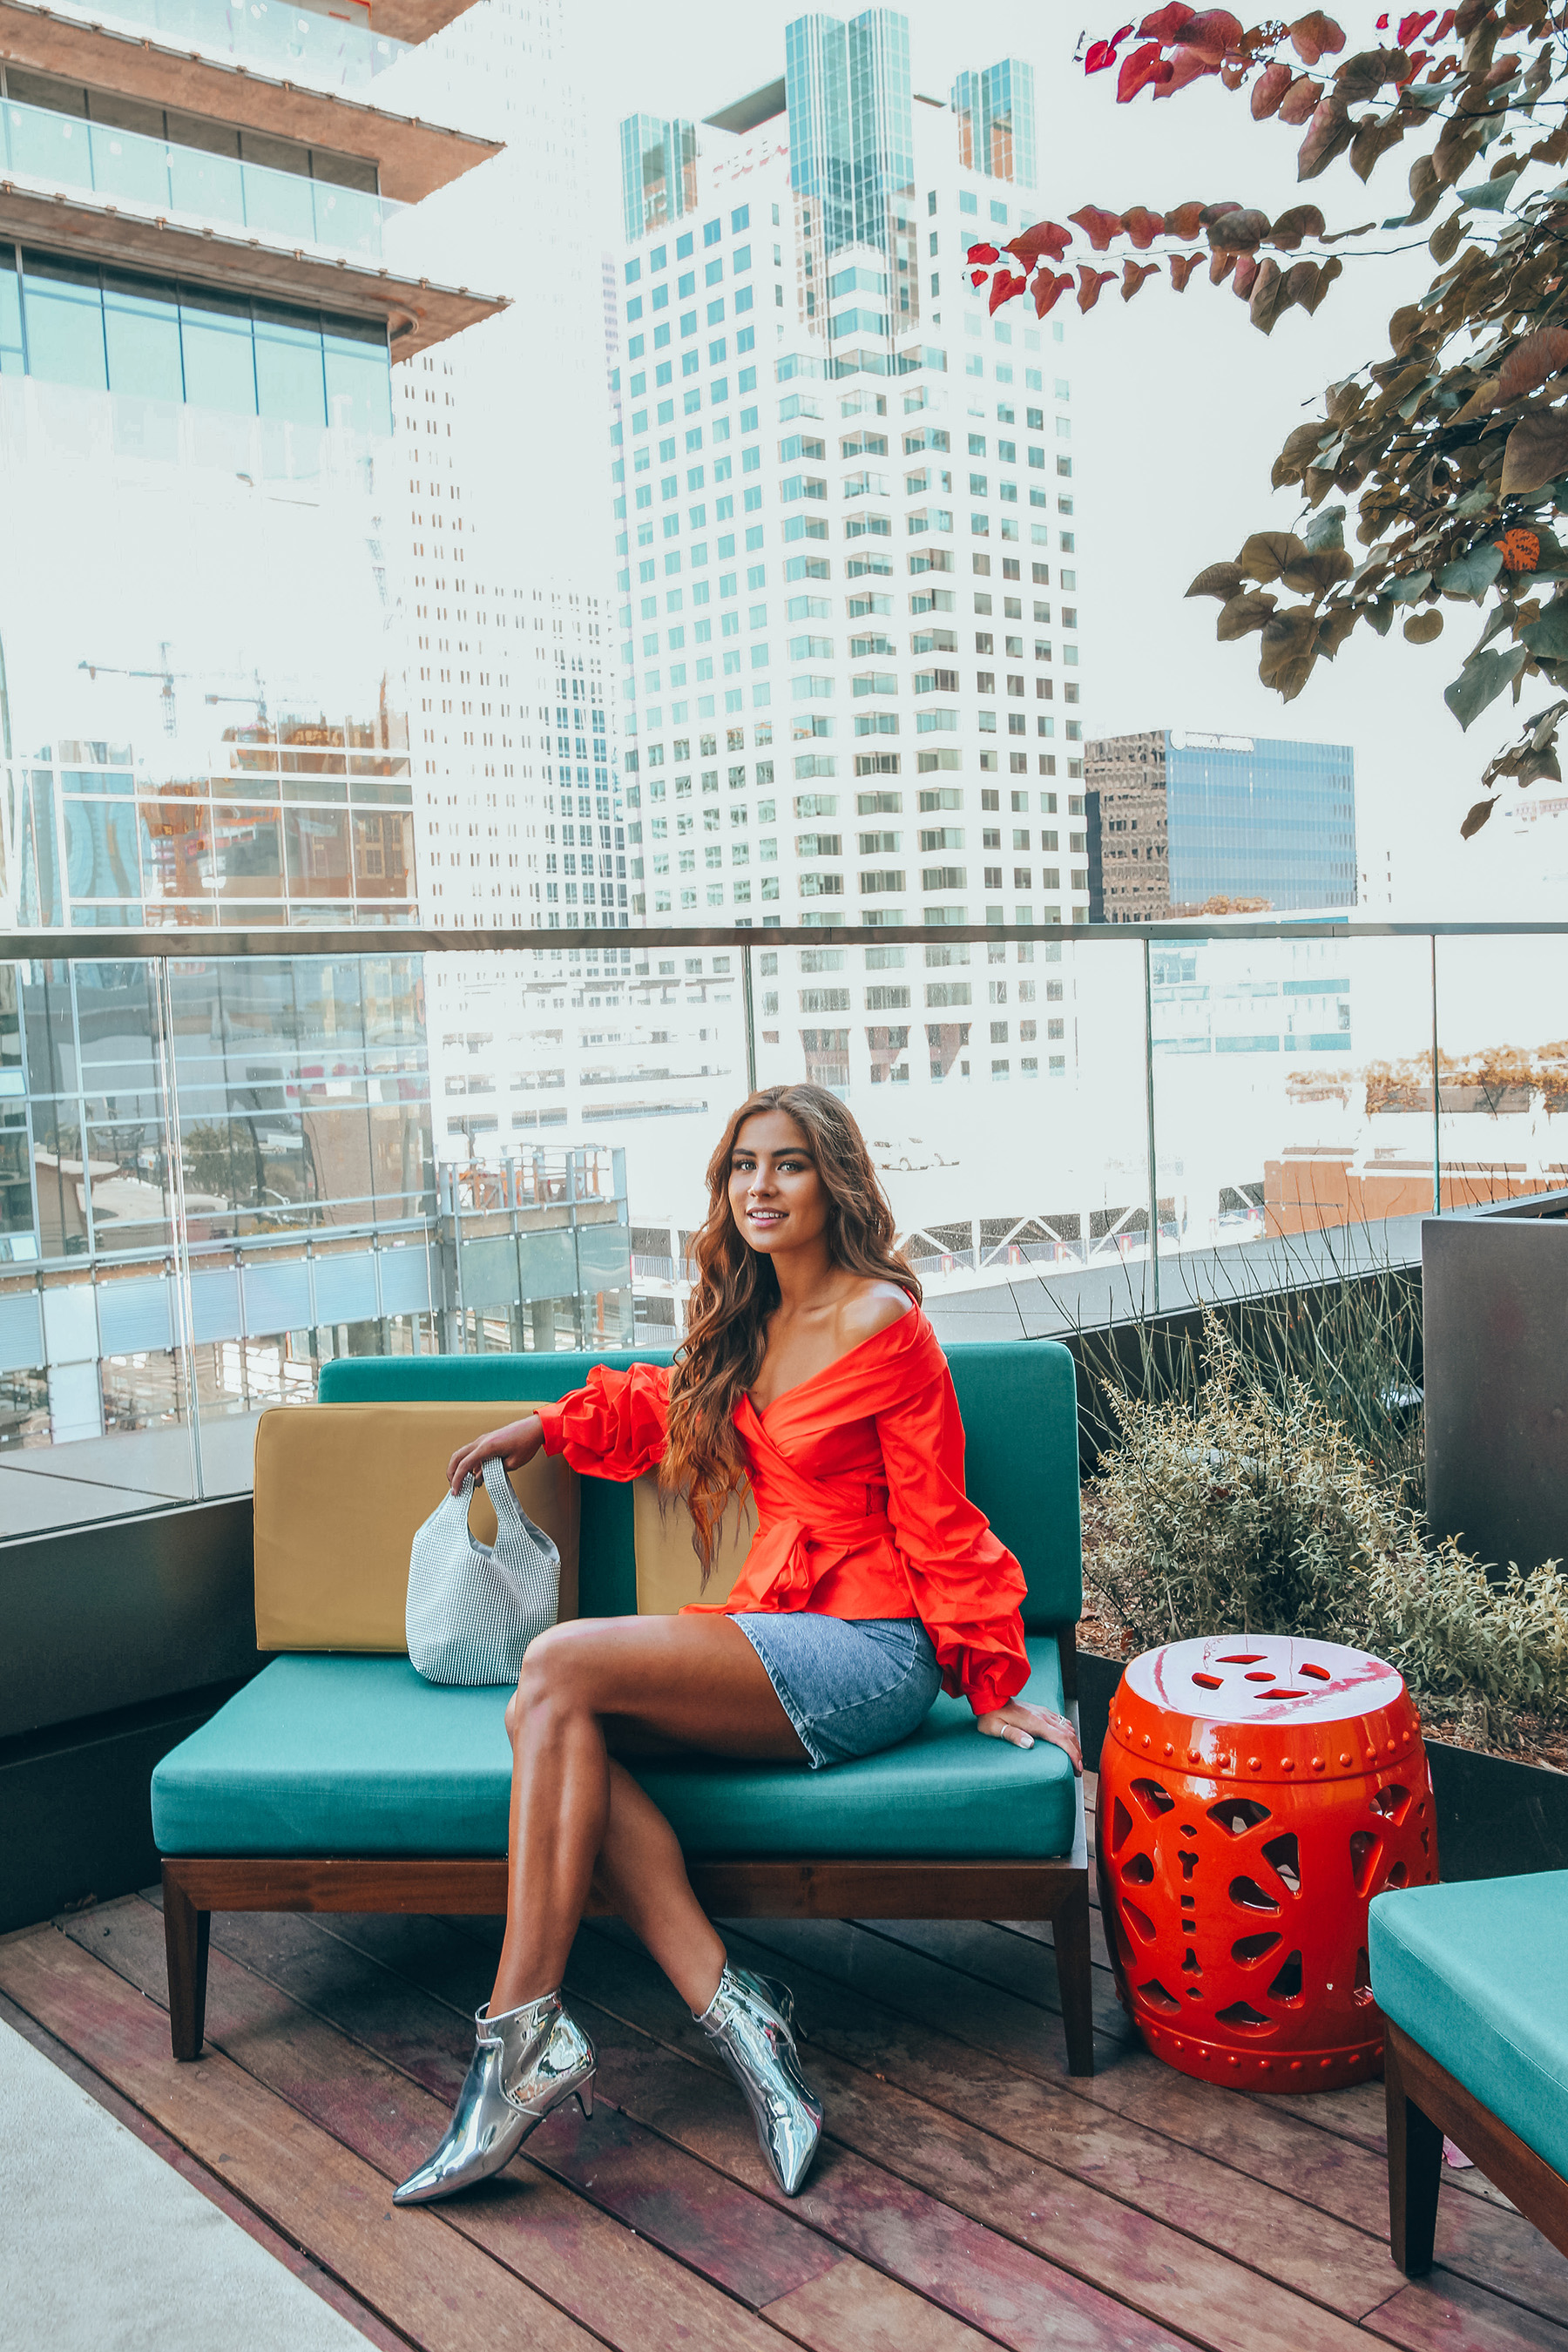 Hotel Indigo® And ASOS® Launch Collaboration Featuring Travel-Inspired Fashion